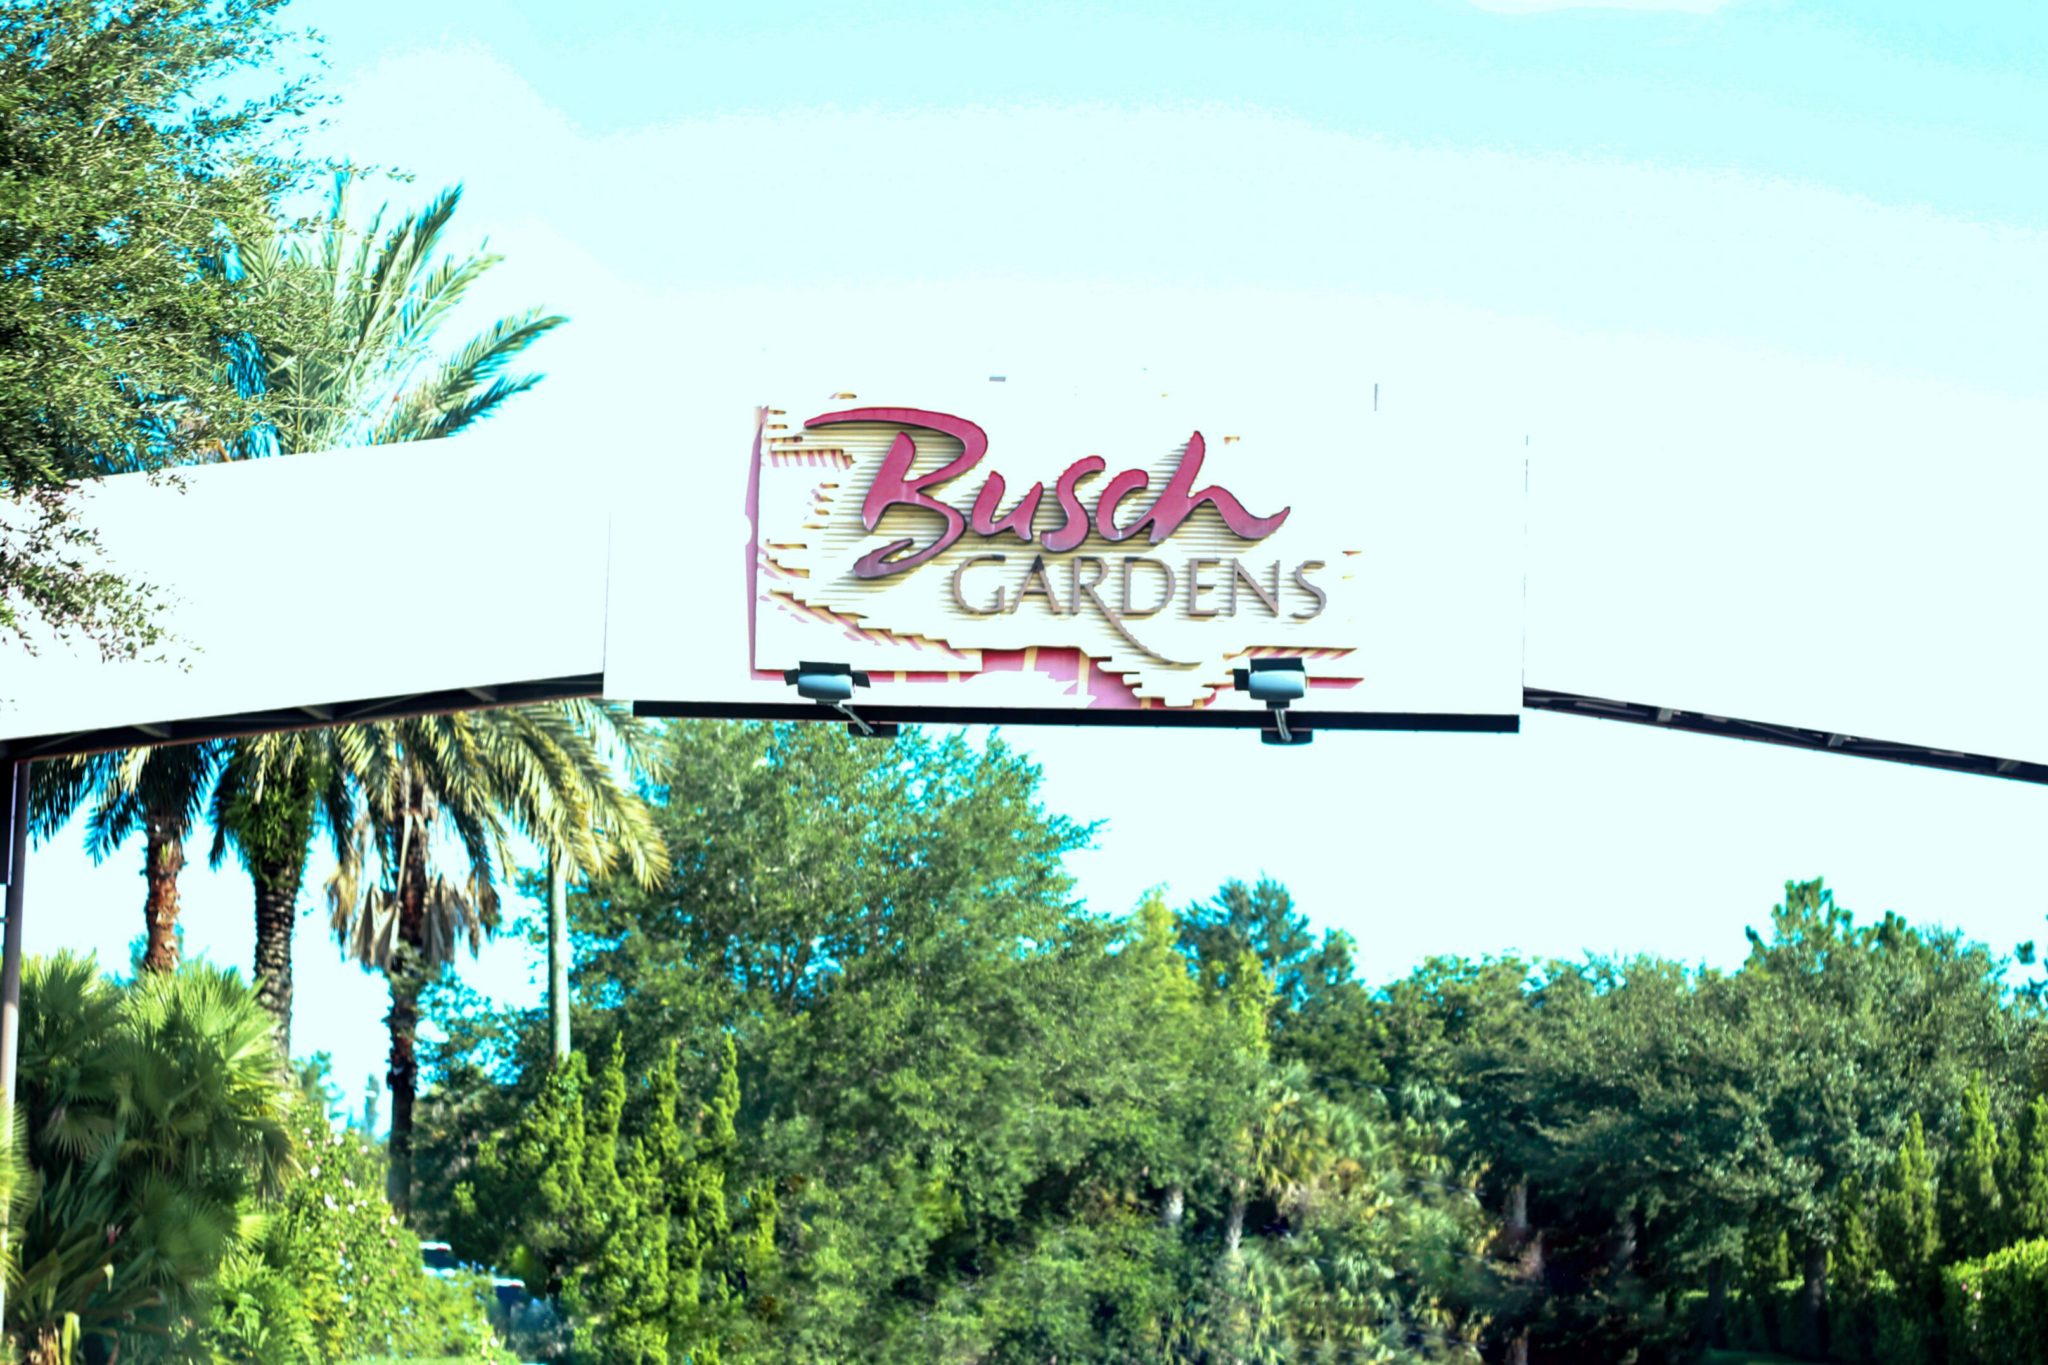 KID FRIENDLY ATTRACTIONS IN BUSCH GARDENS TAMPA